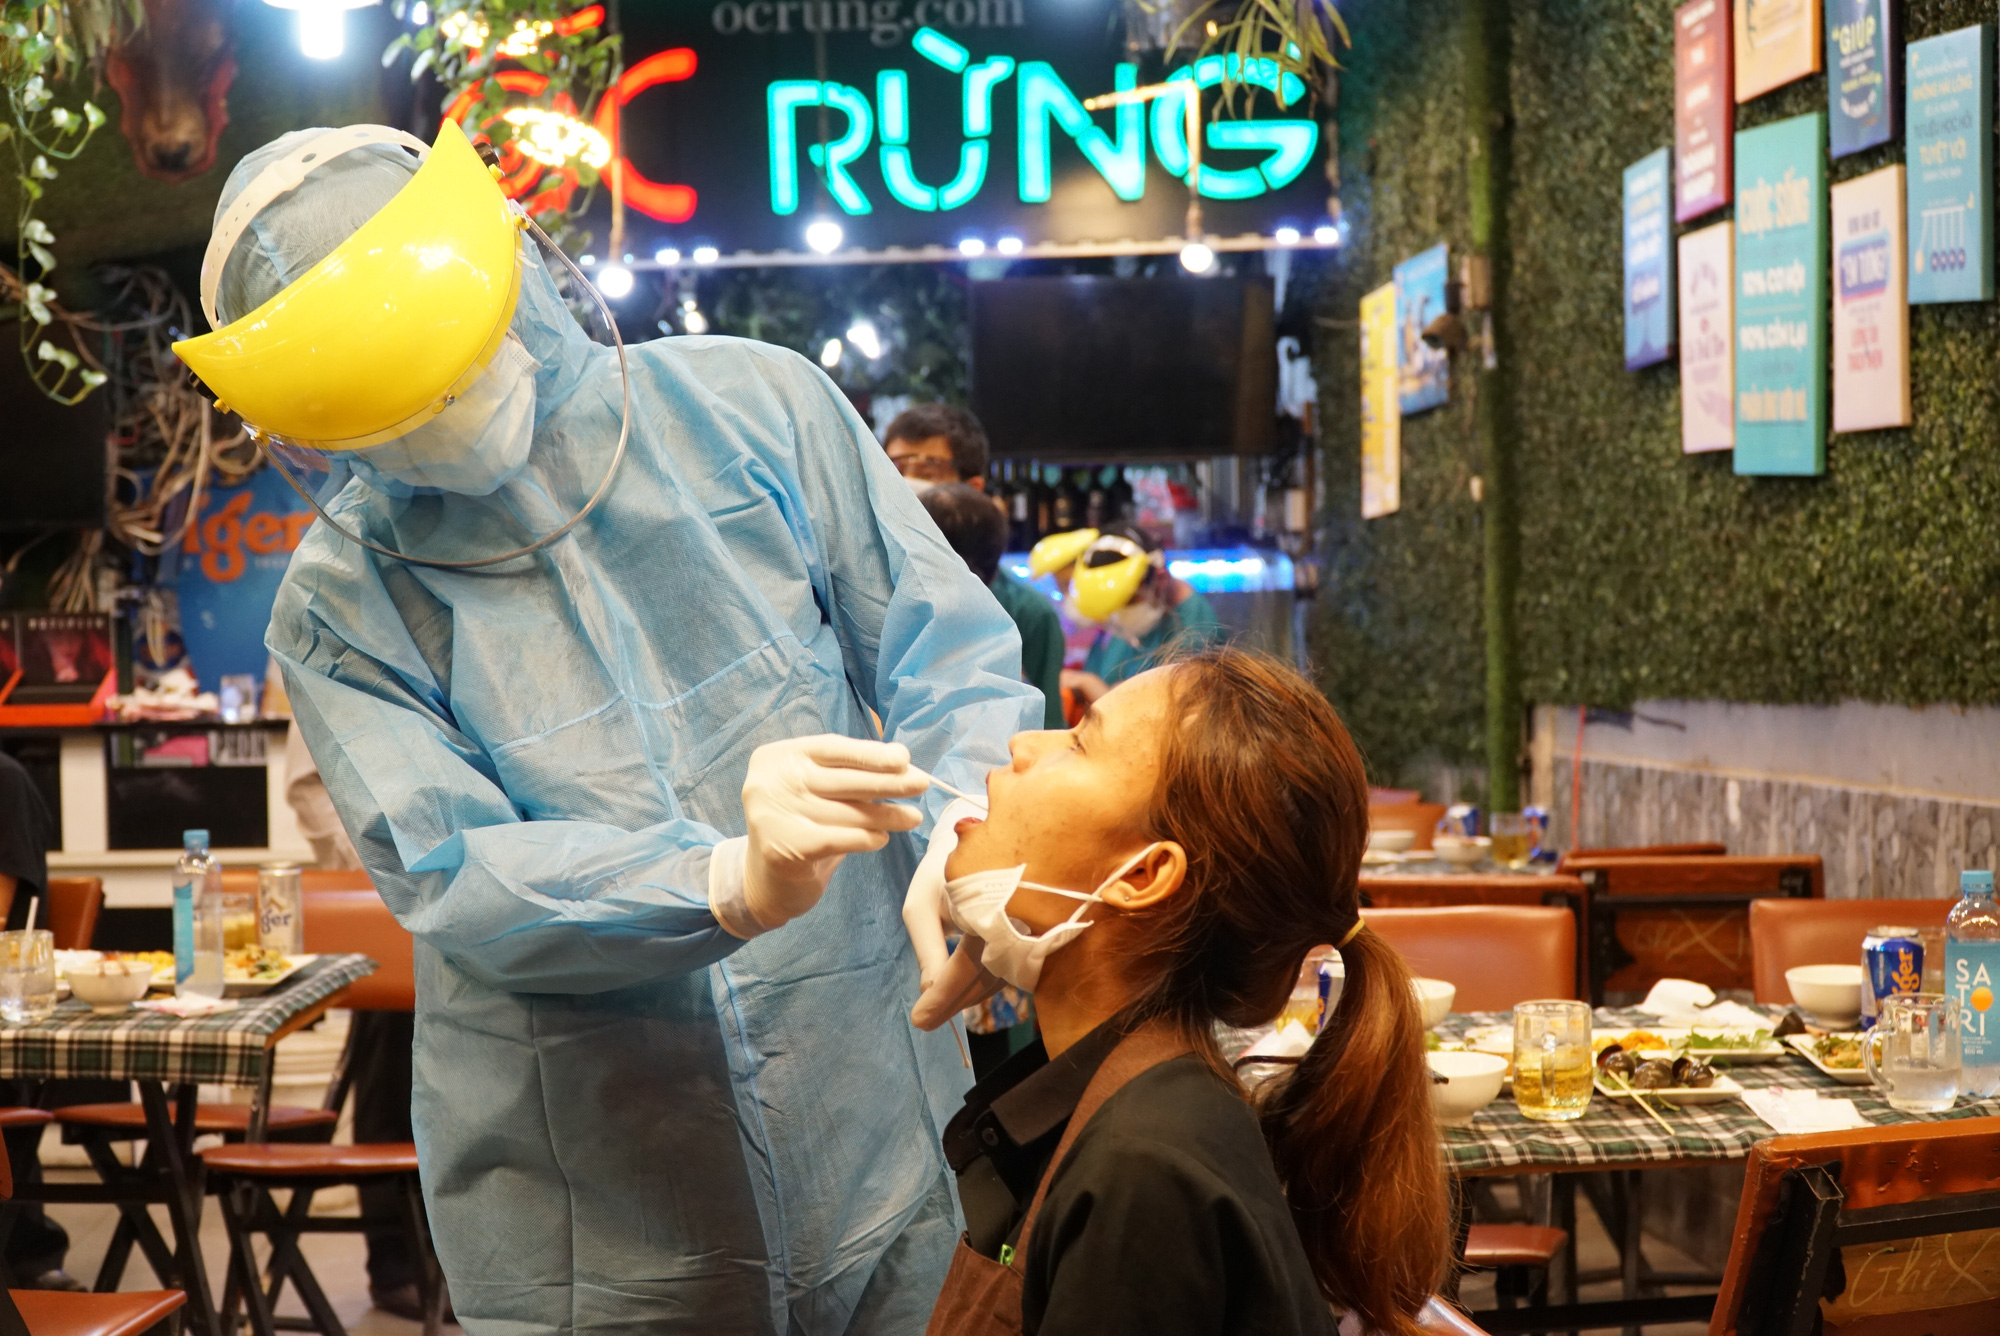 A medical worker samples a woman at a restaurant in Ward 11, Binh Thanh District, Ho Chi Minh City, February 22, 2021. Photo: Dan Thuan / Tuoi Tre